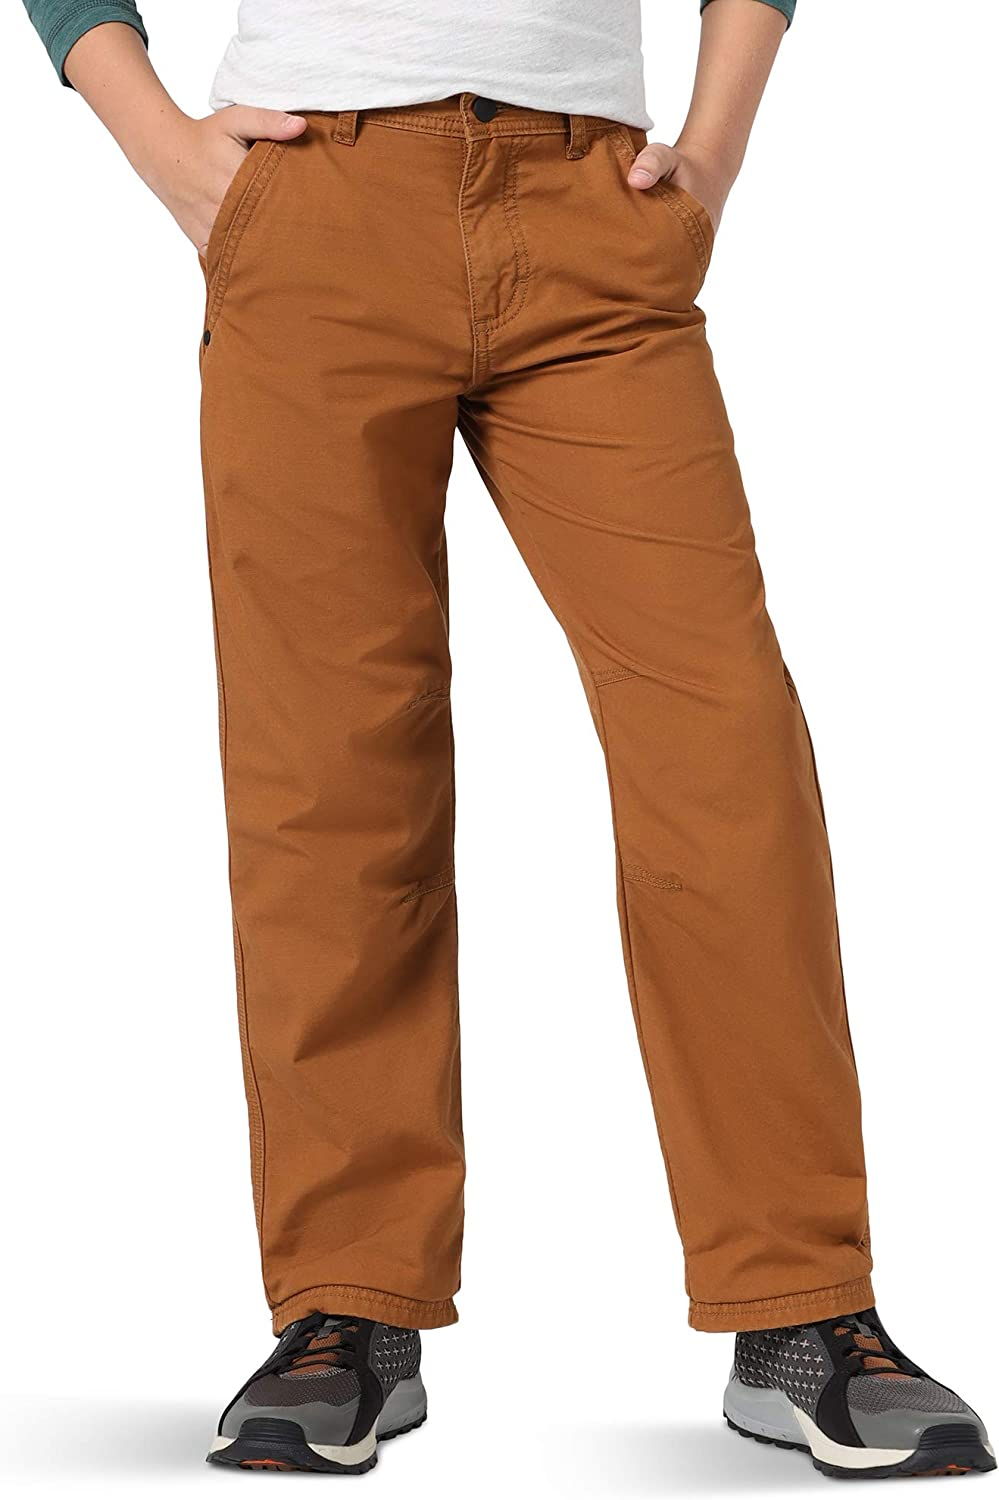 ATG by Wrangler Boys Lined Ripstop Pant